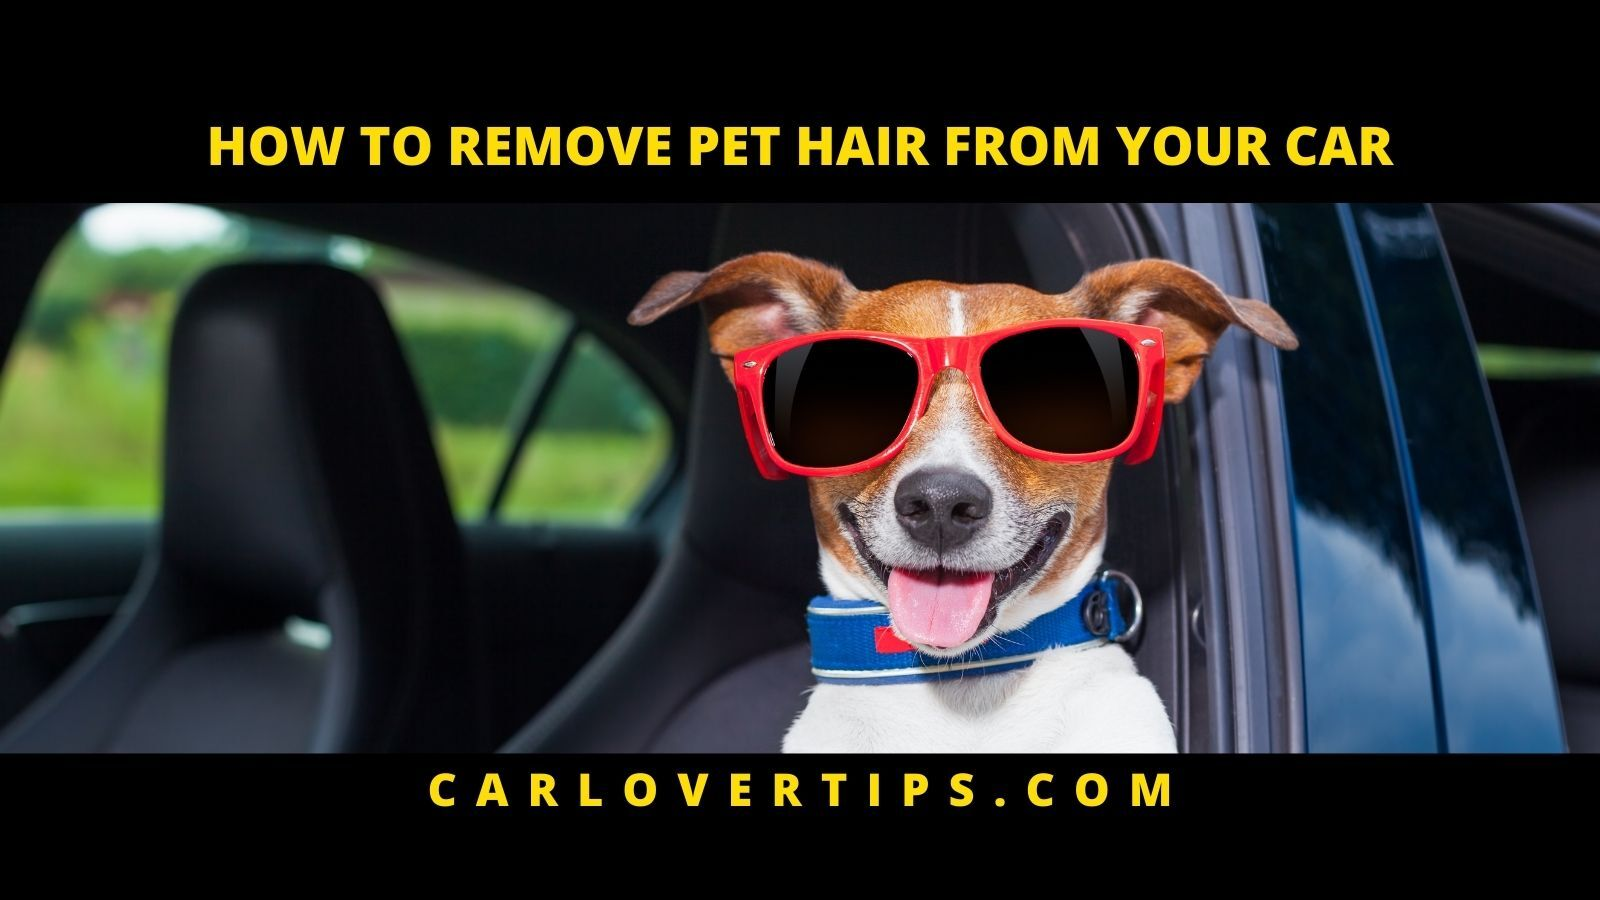 HOW TO Remove Pet Hair From Your Car Lover Tips